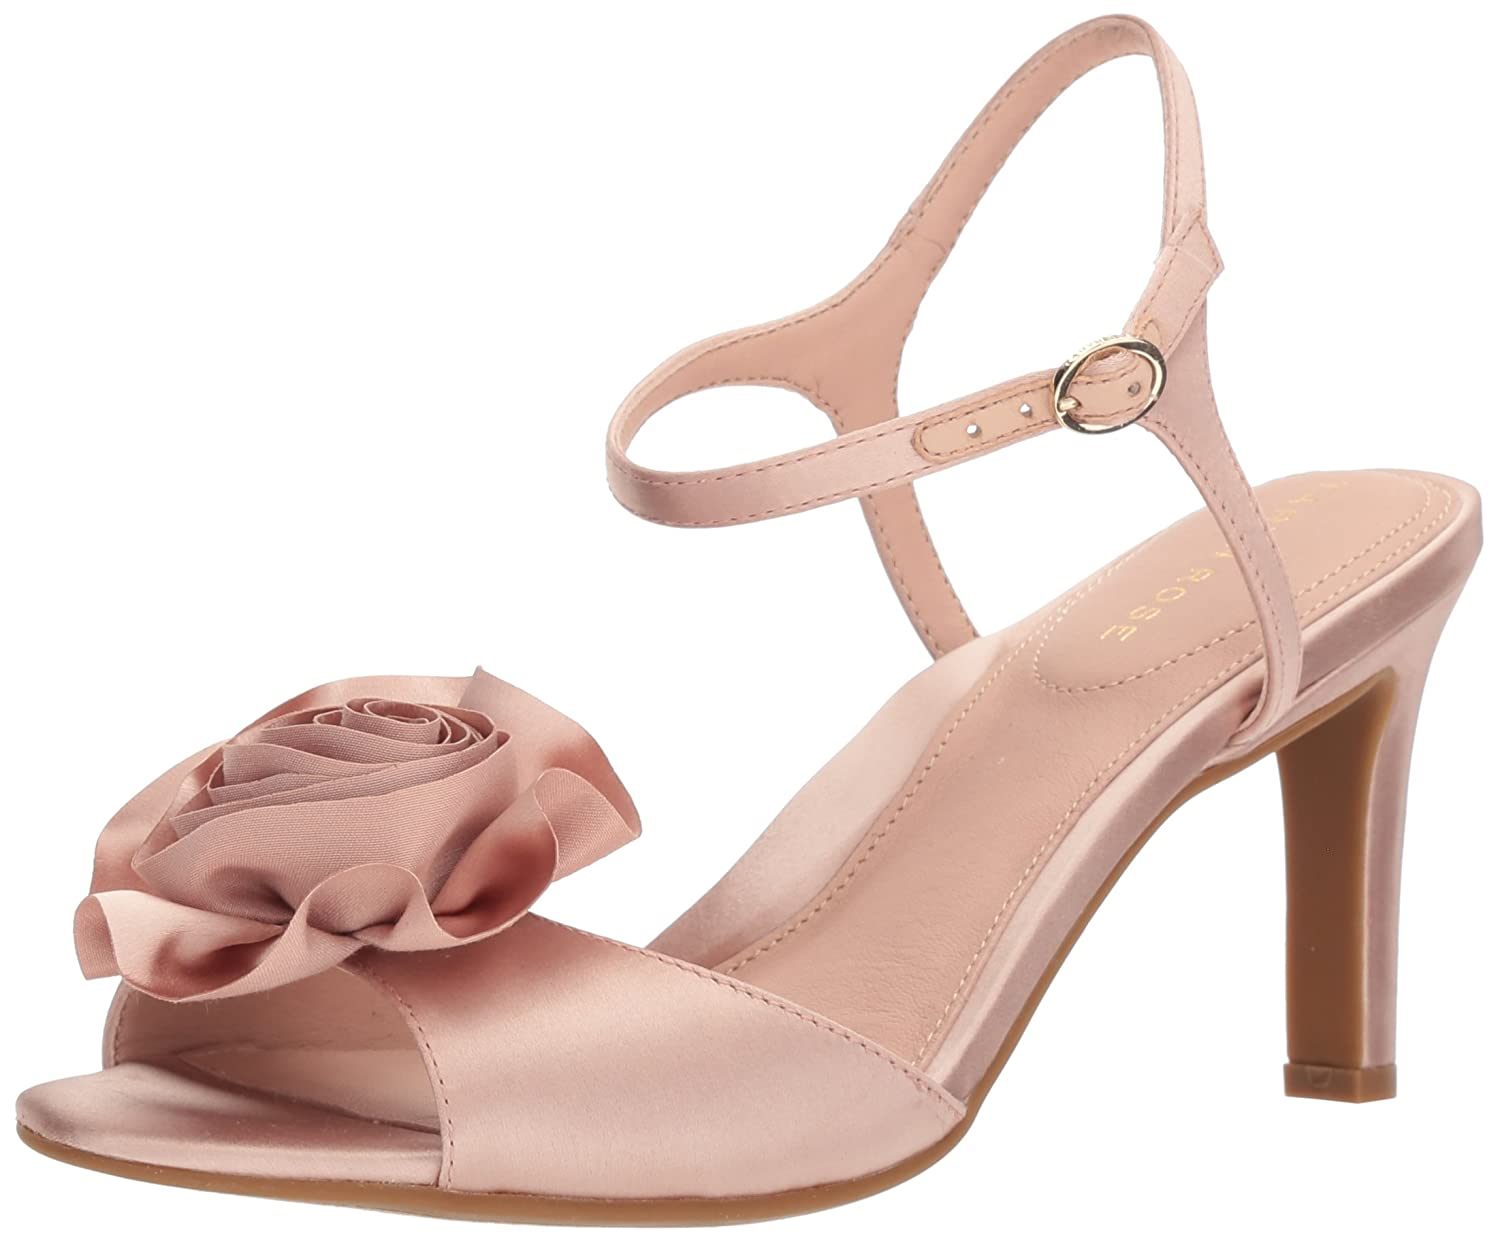 Taryn Rose Women's Jacklyn Pump B075MQNQ2B 8.5 M Medium US|Blush